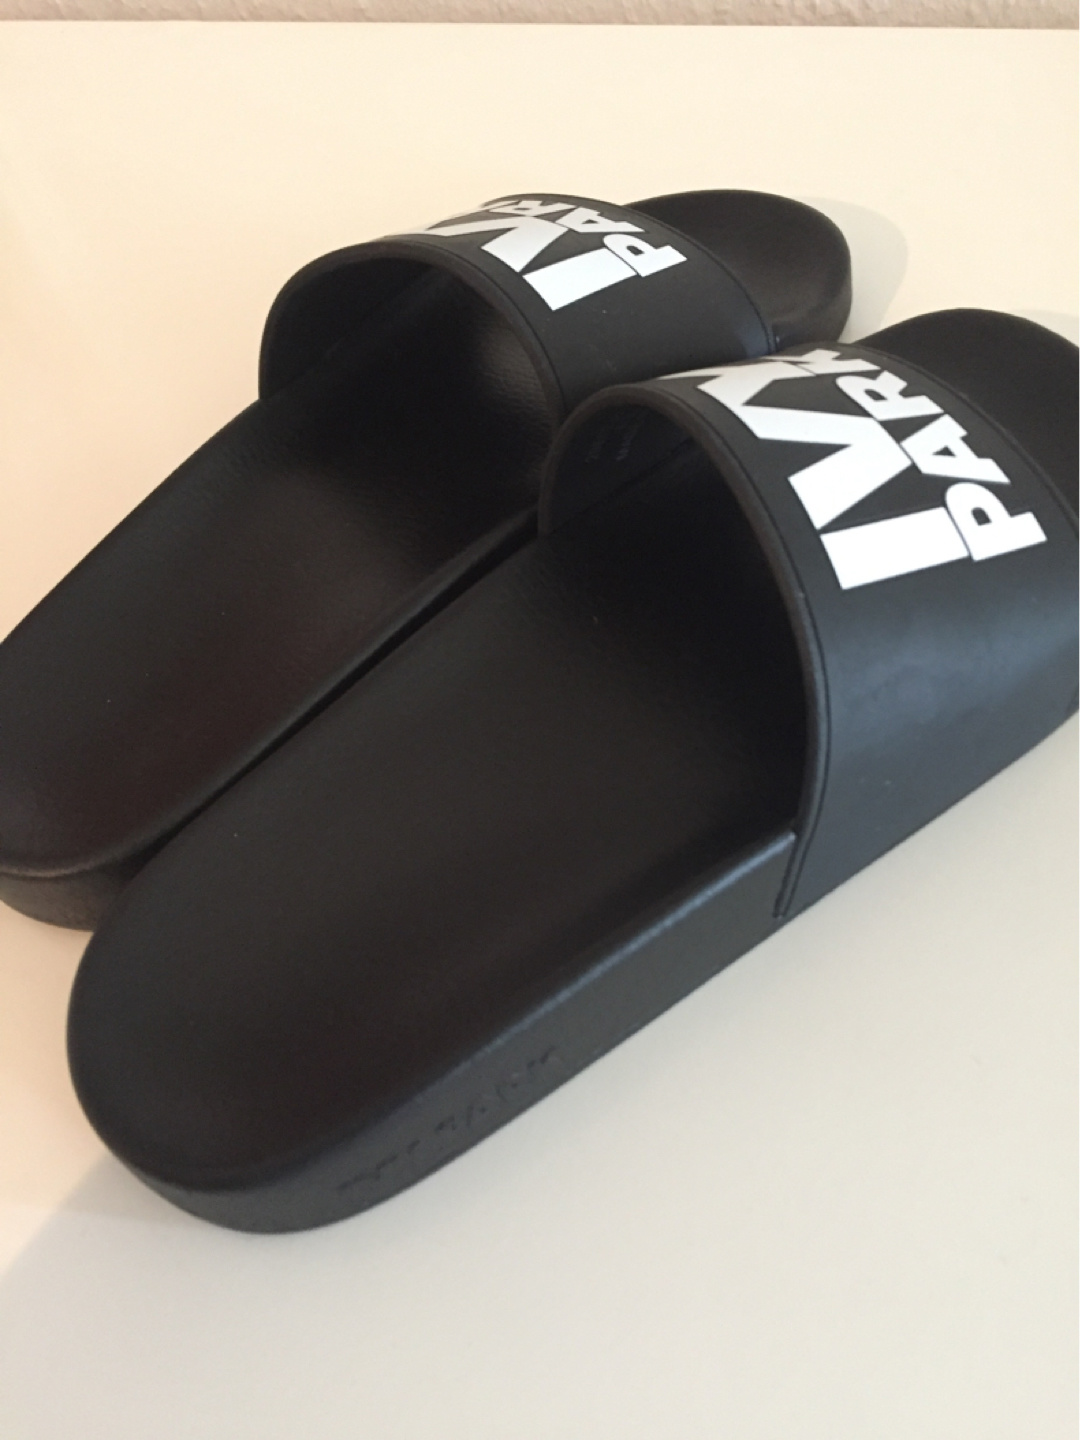 Women's sandals & slippers - IVY PARK photo 3